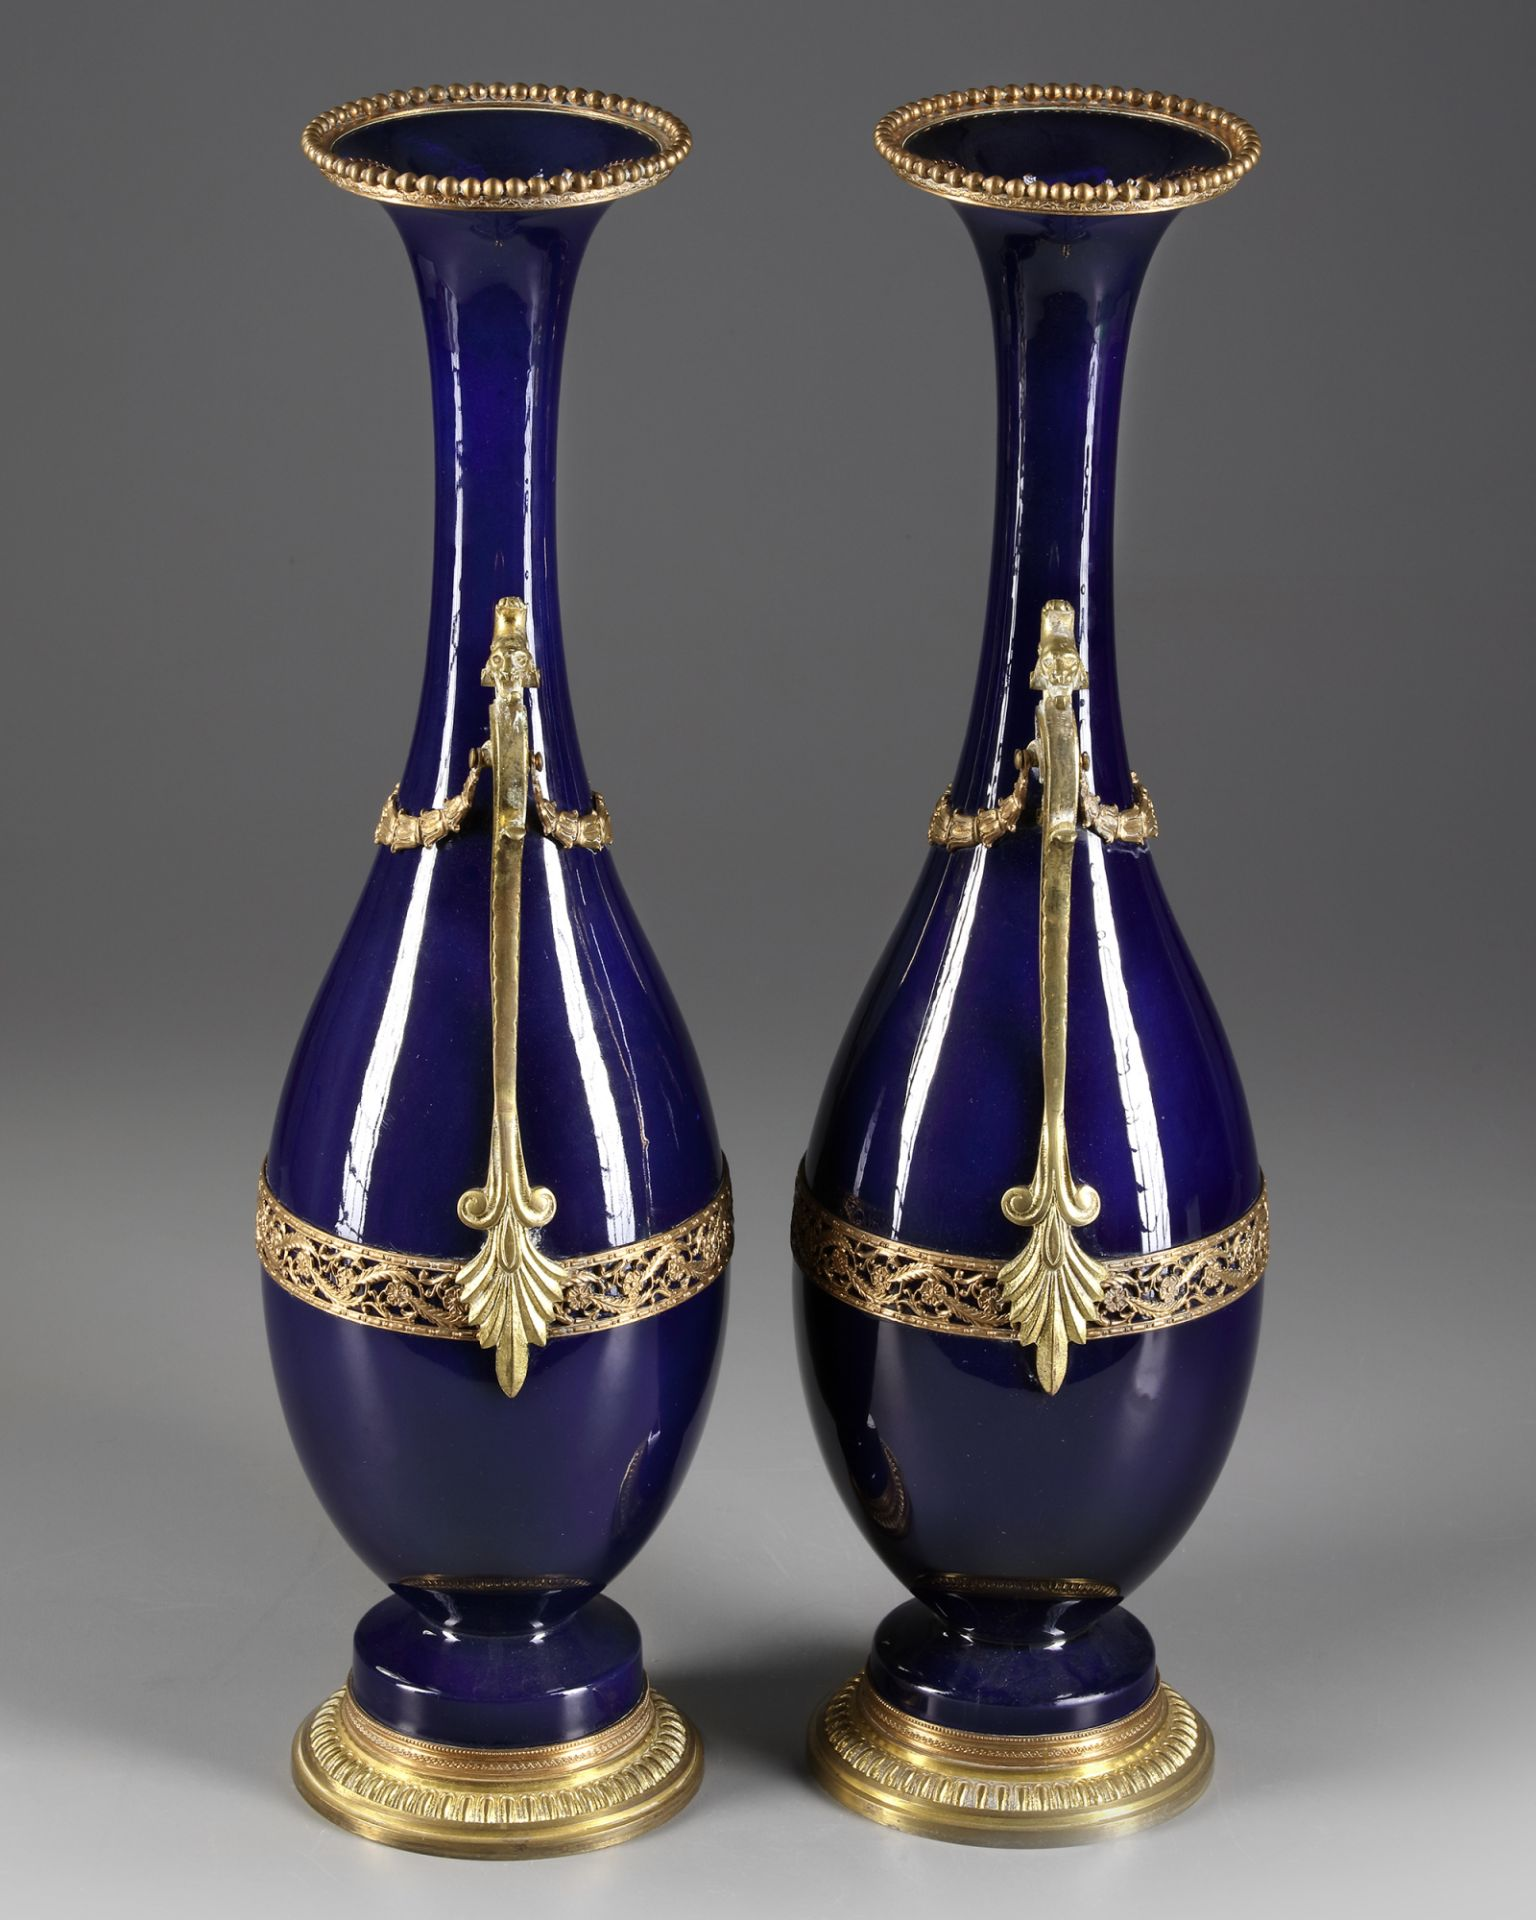 A PAIR OF FRENCH BLUE PORCELAIN VASES, CIRCA 1900 - Image 2 of 3